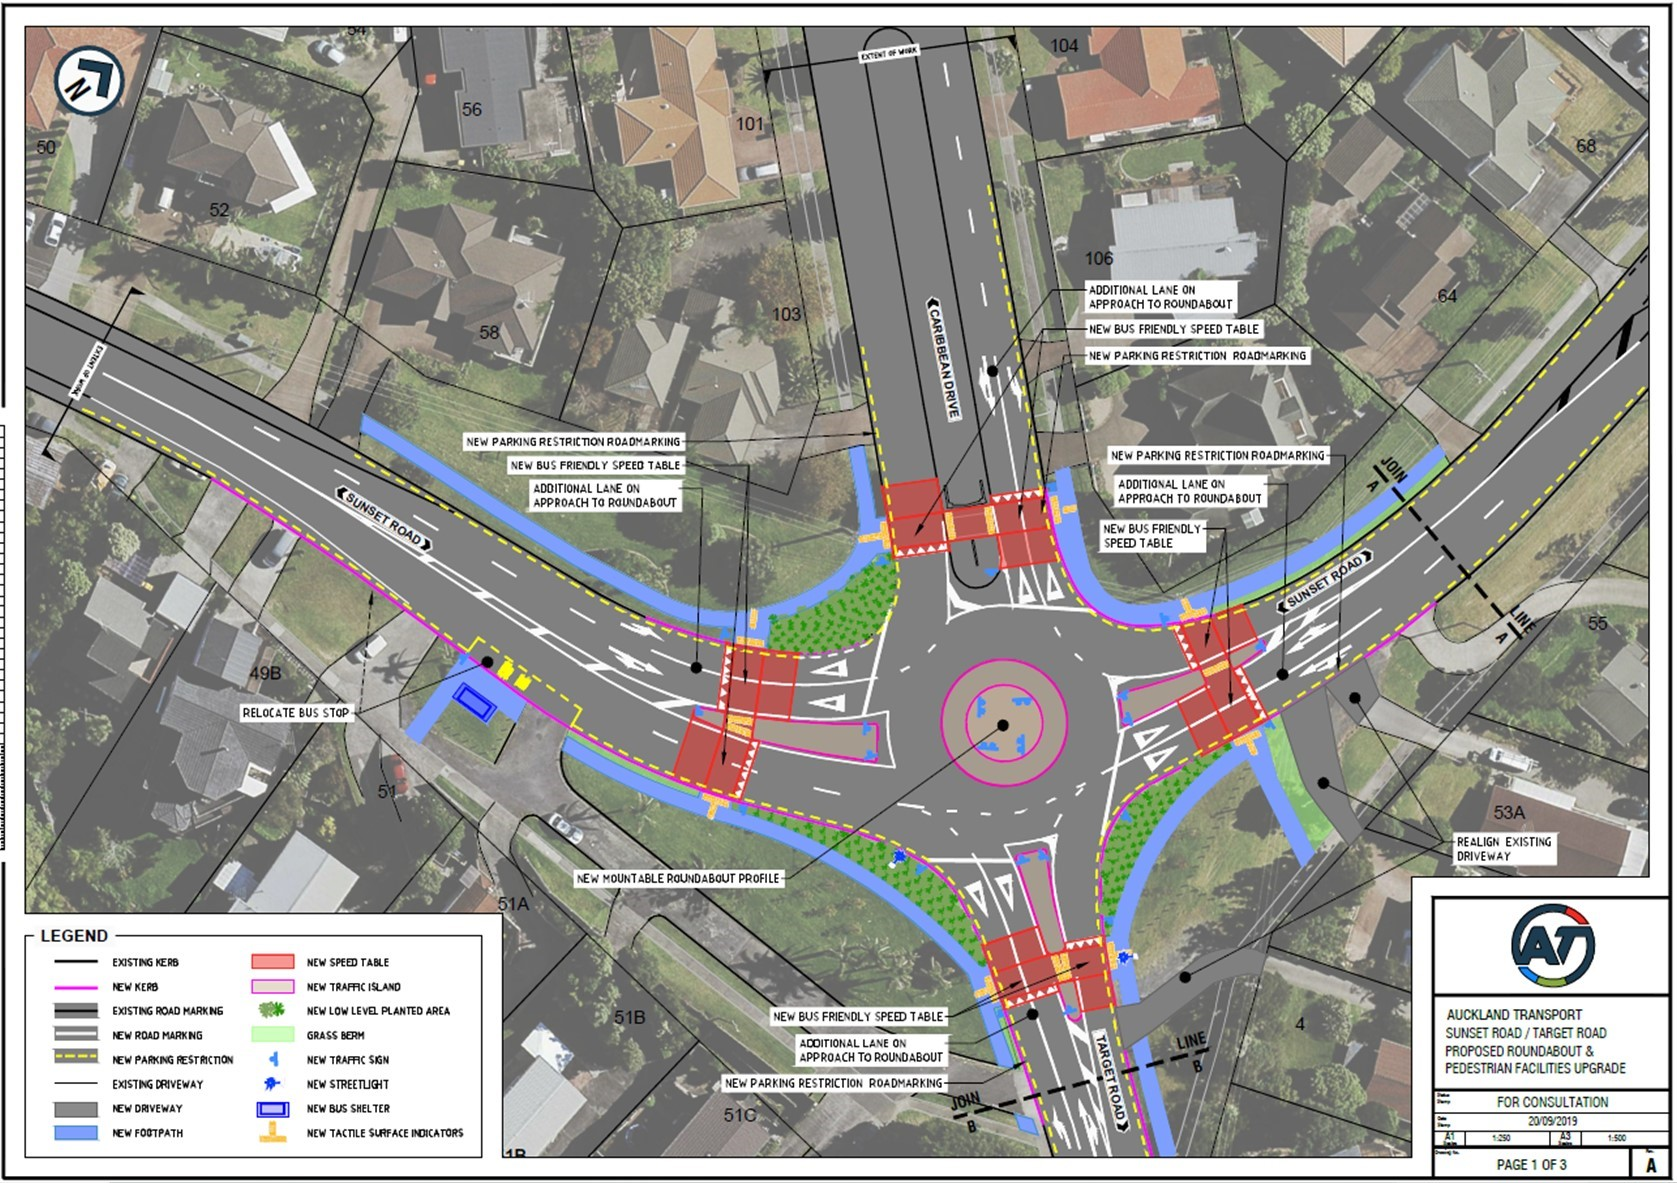 "<strong><span style=""color: #333399;"">Plans showing the changes to roundabout and other improvements</span></strong>"